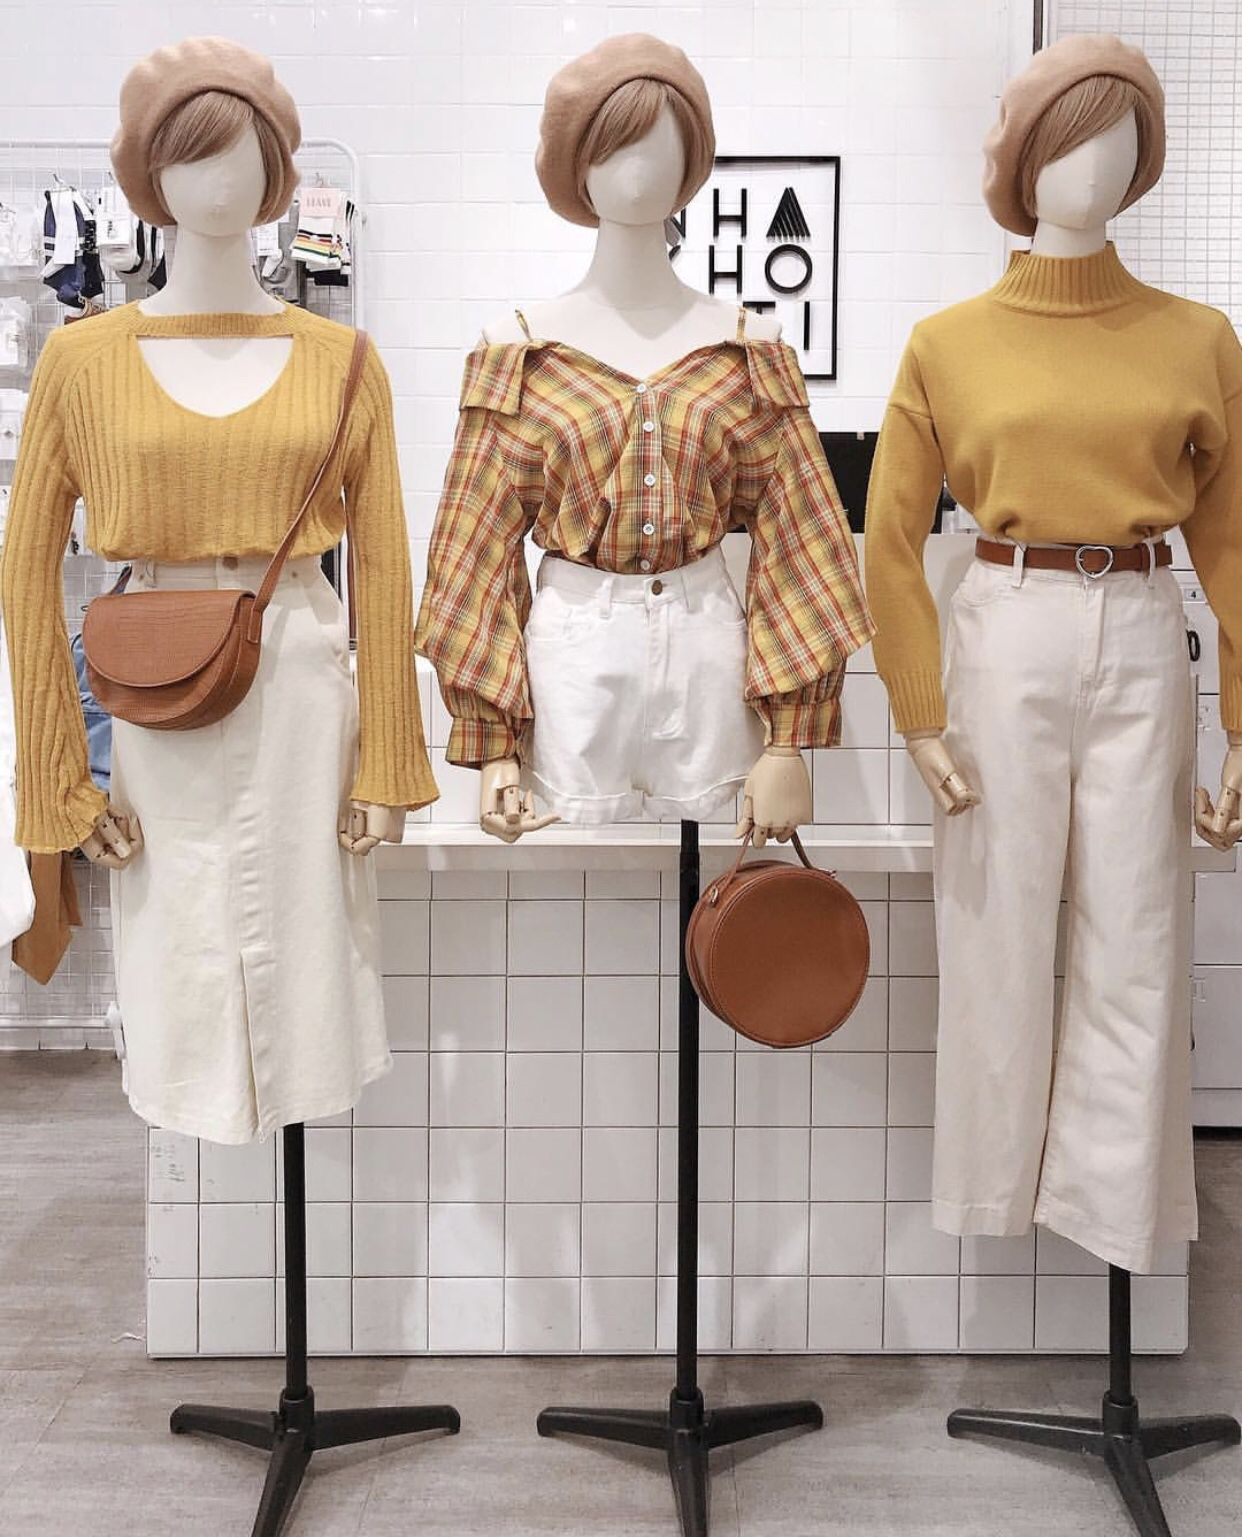 Pin by eunike lois on fashioooon pinterest fashion outfits and